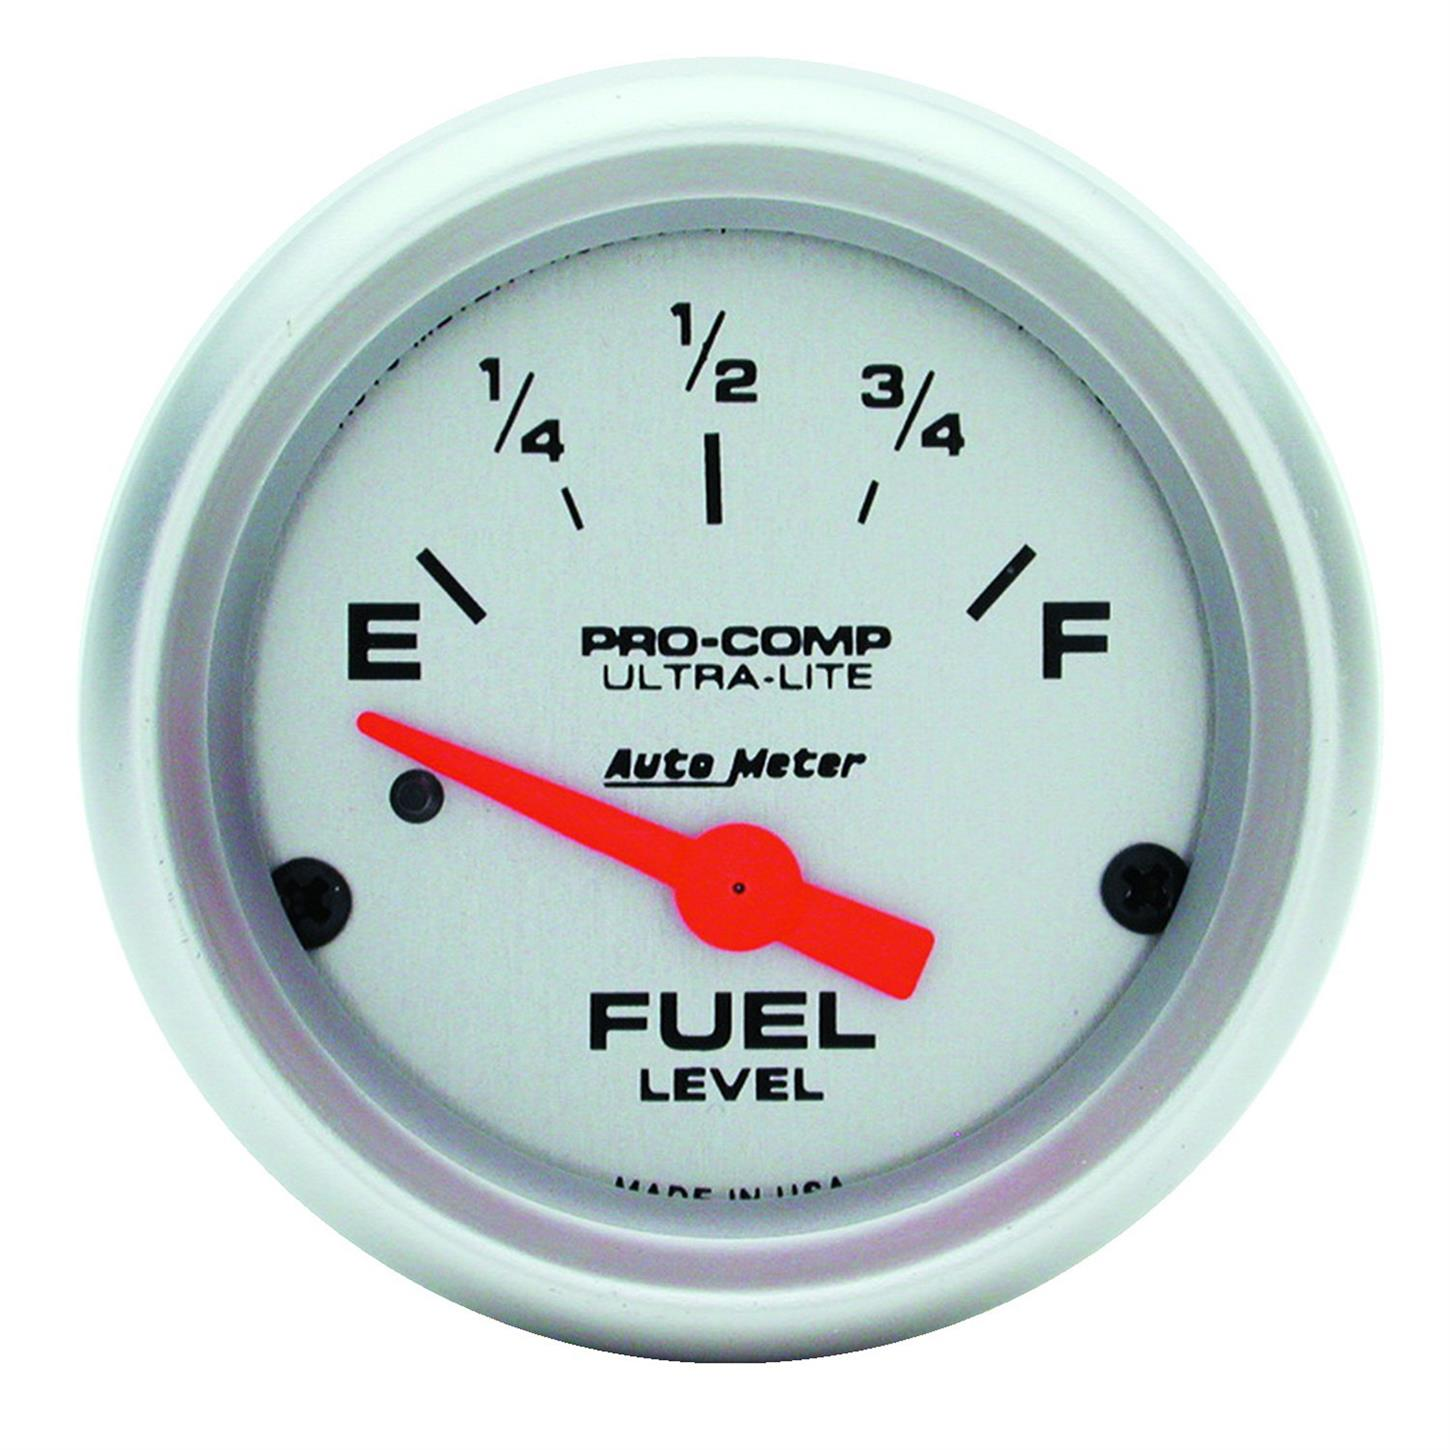 Auto Meter 4314 Ultra-Lite Air-Core Fuel Level Gauge, 2-1/16 Inch